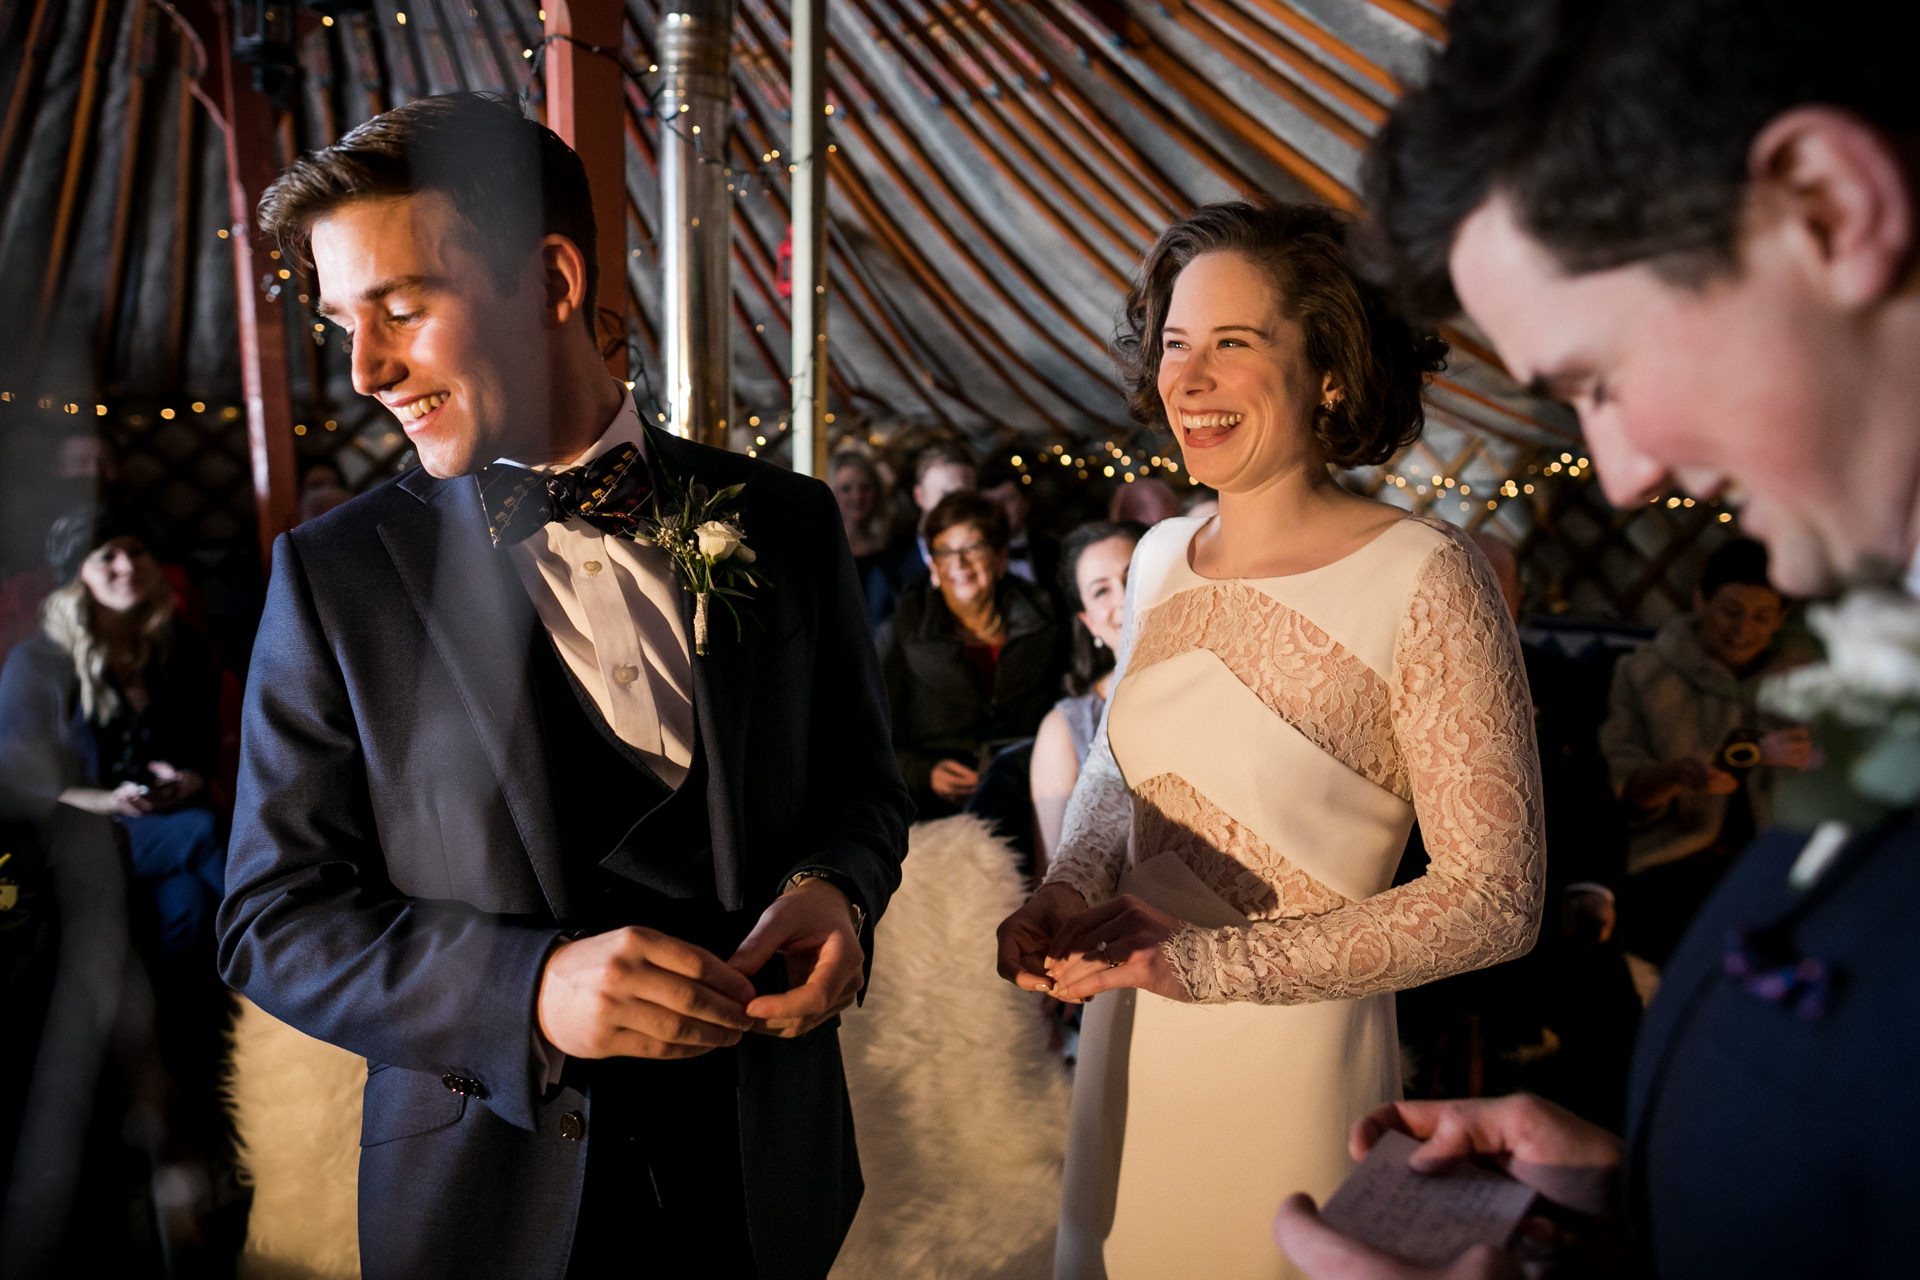 Les Arcs, France Elopement Photography | The bride smiles with delight as the groom looks for the wedding ring